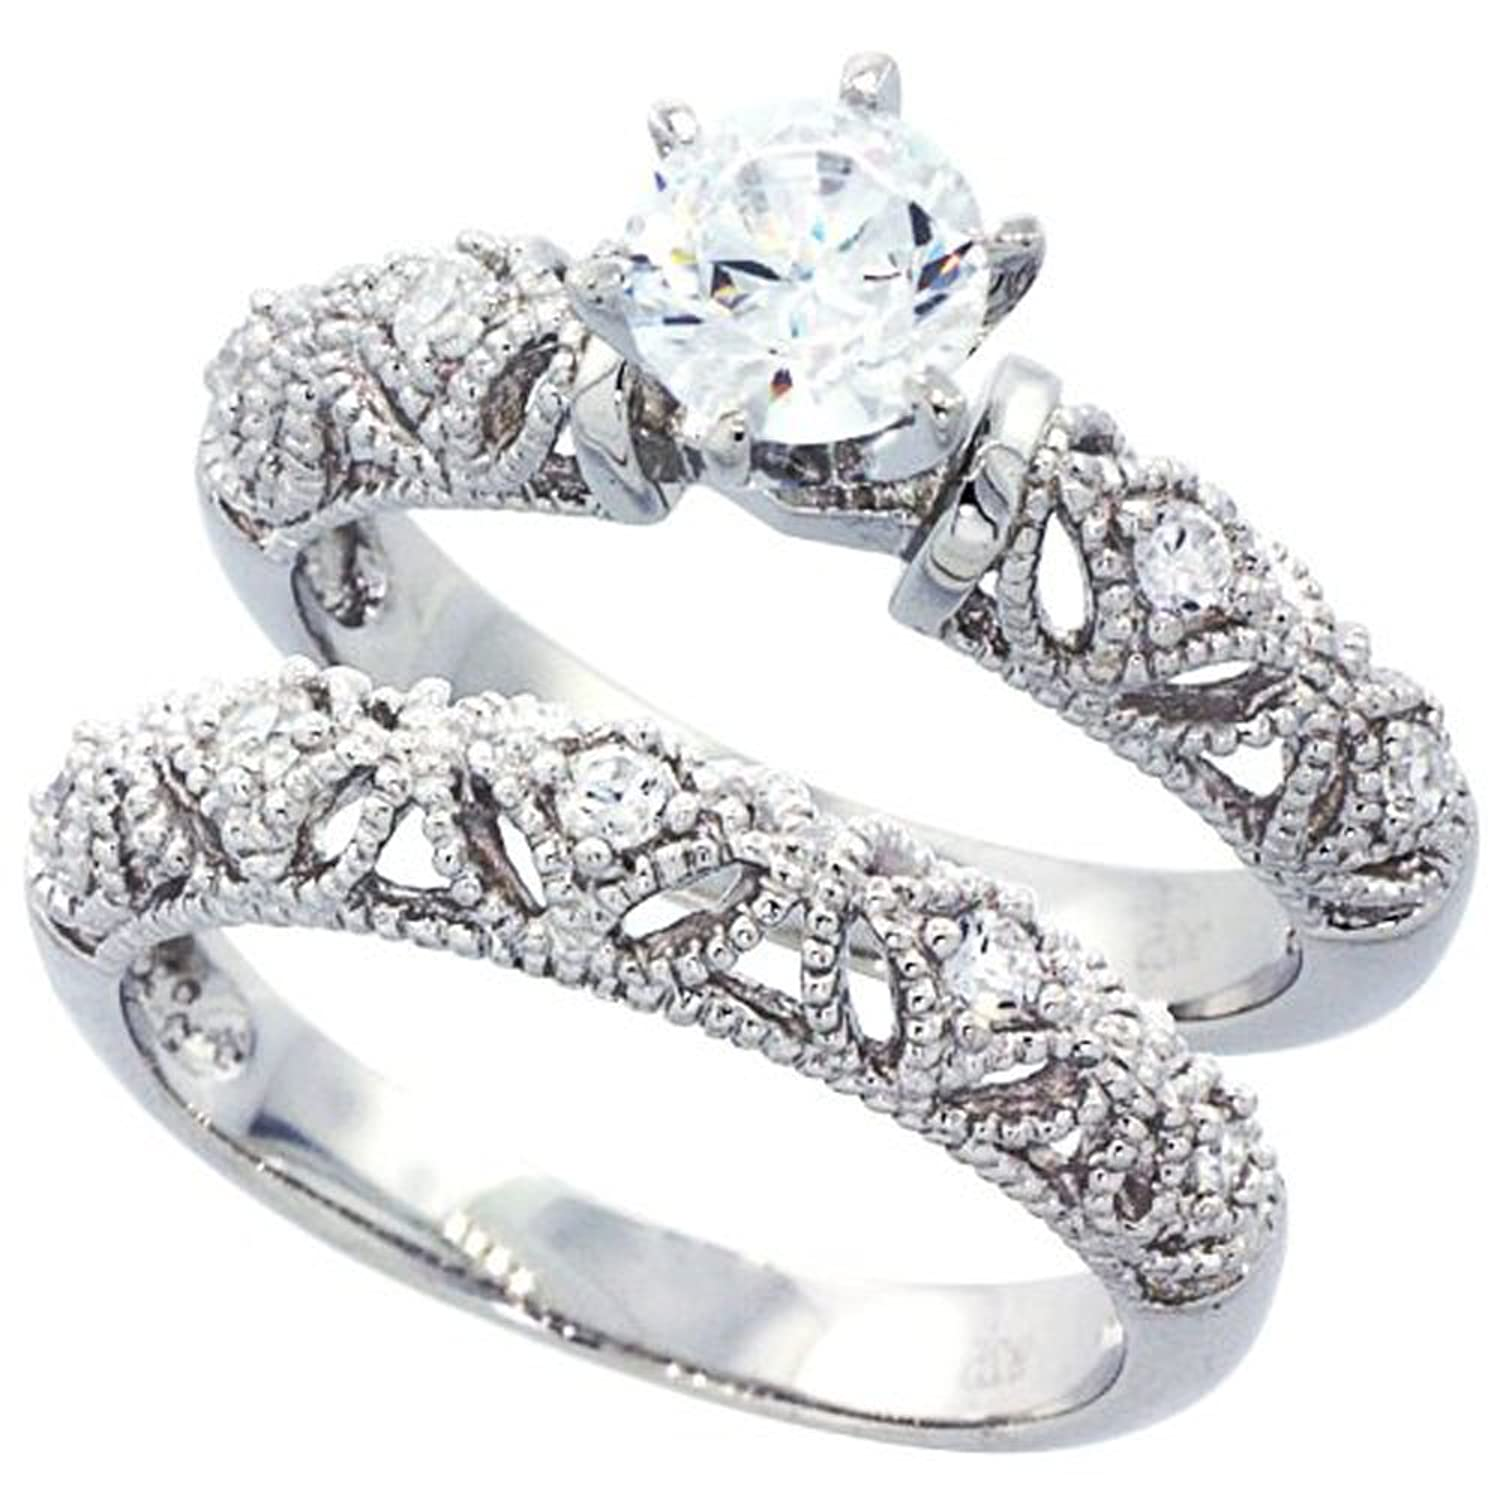 bands engagement pinterest jewellery ring on about promise diamond matching images simple rings and for women wedding